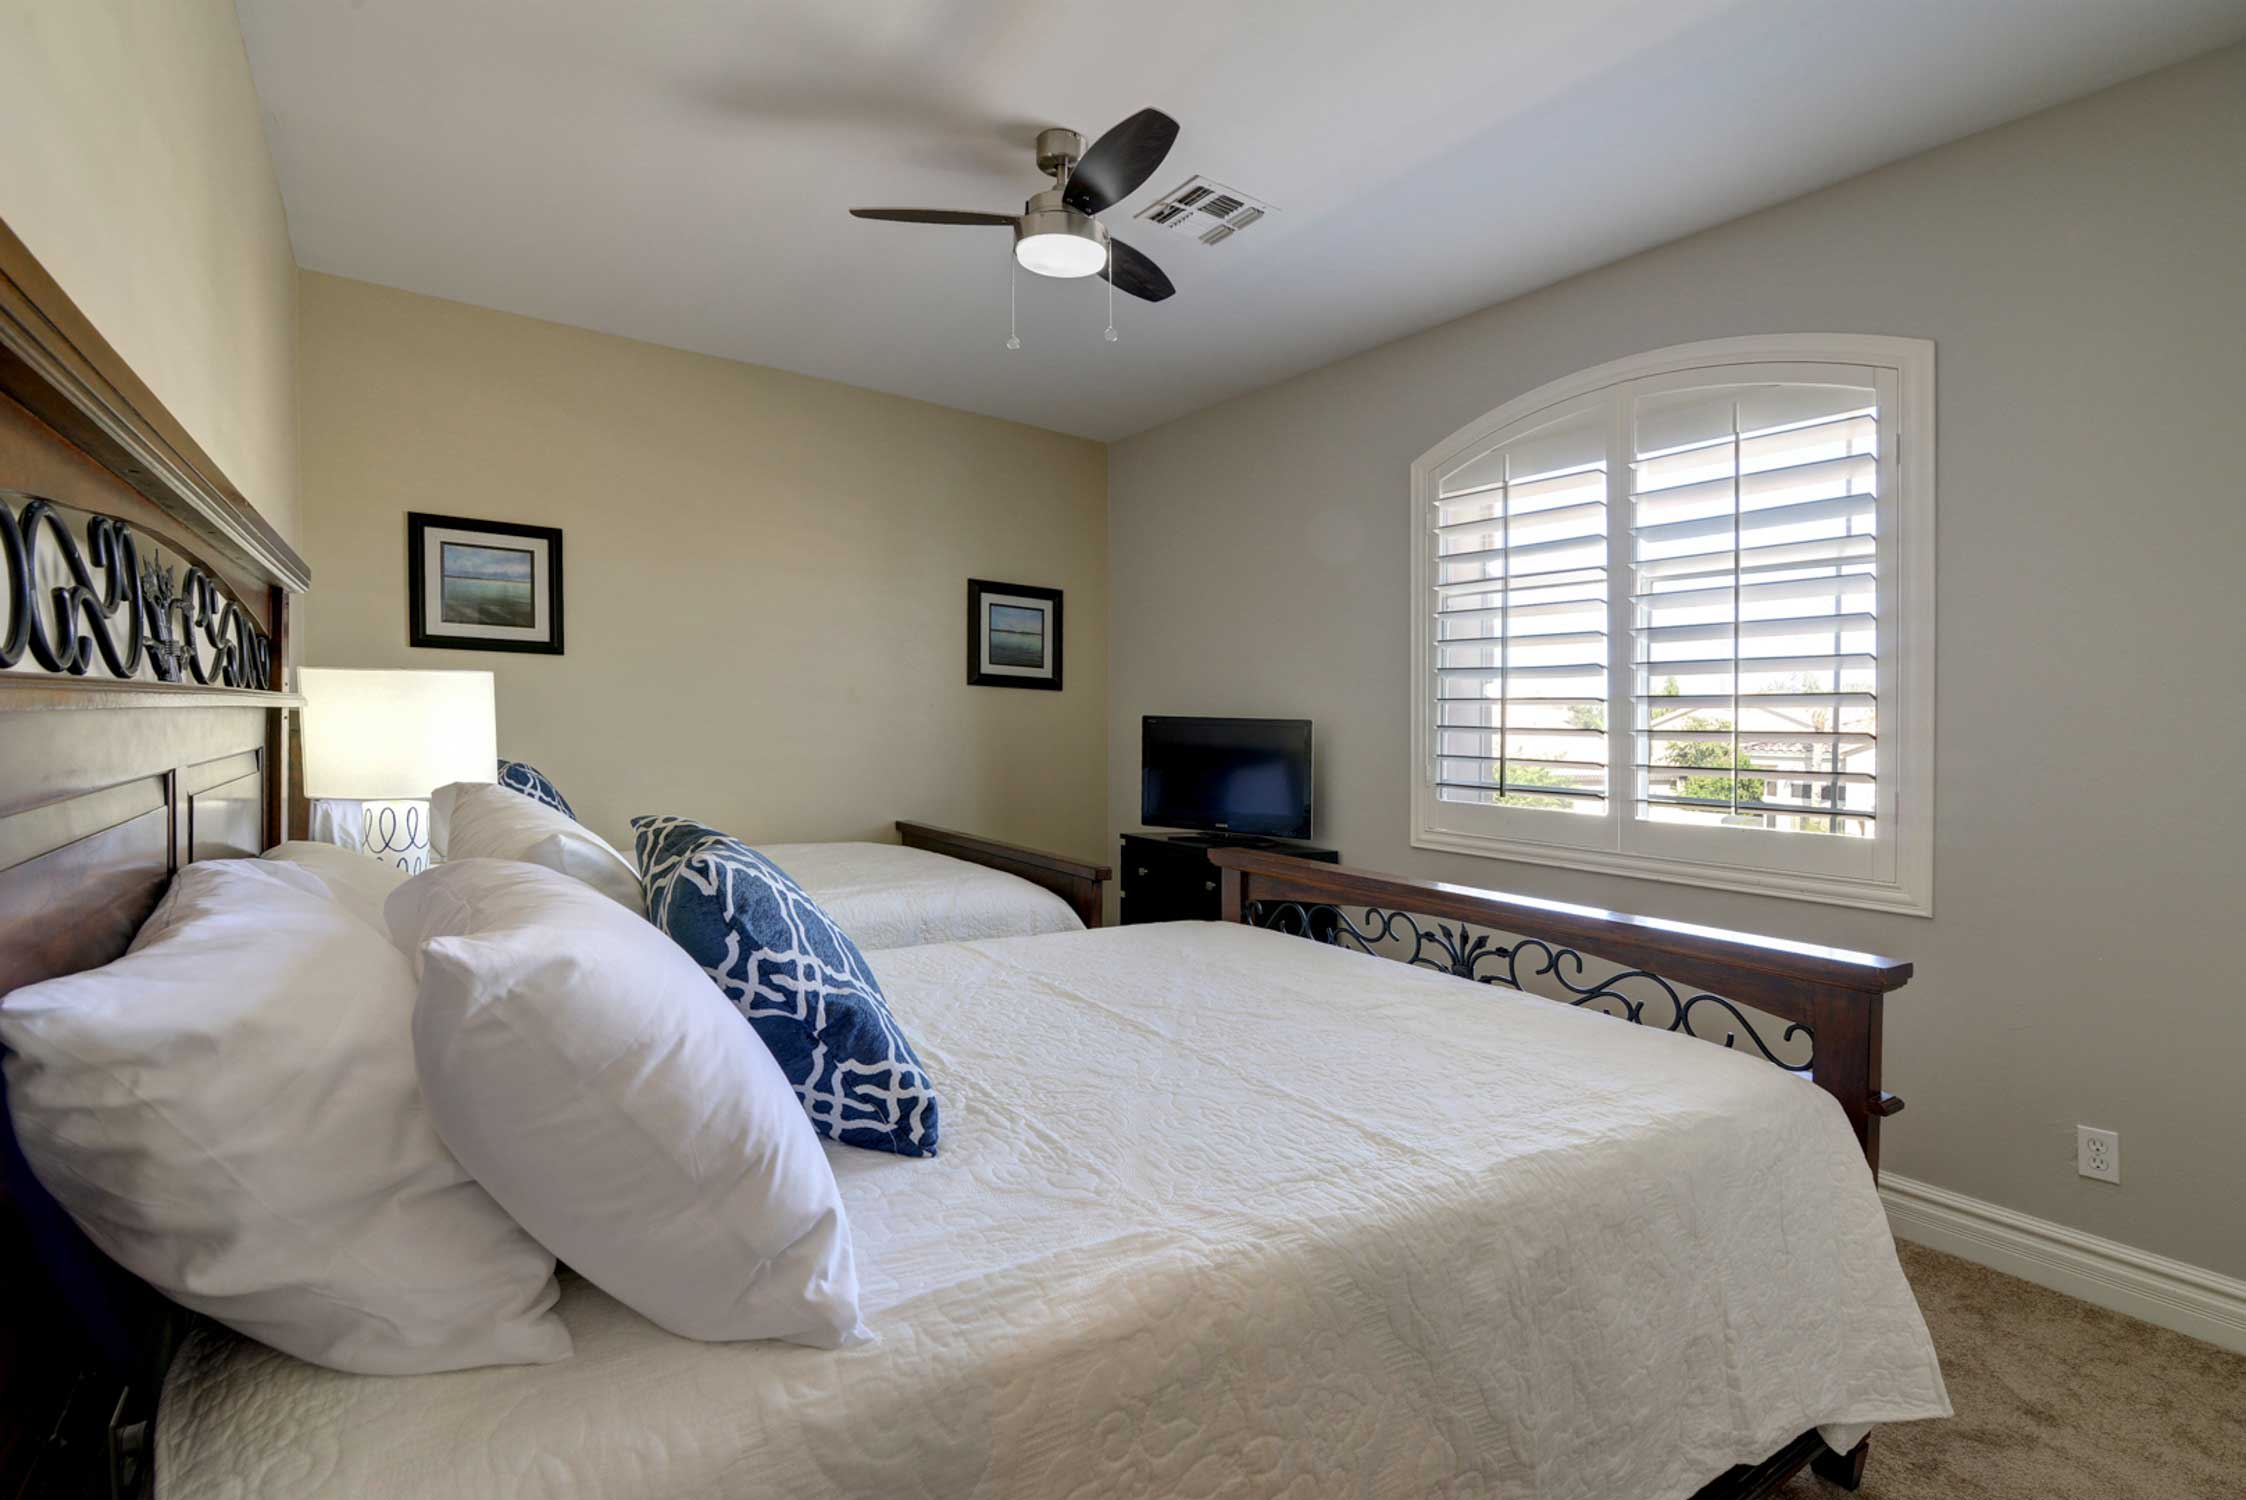 This room includes 2 queen beds.